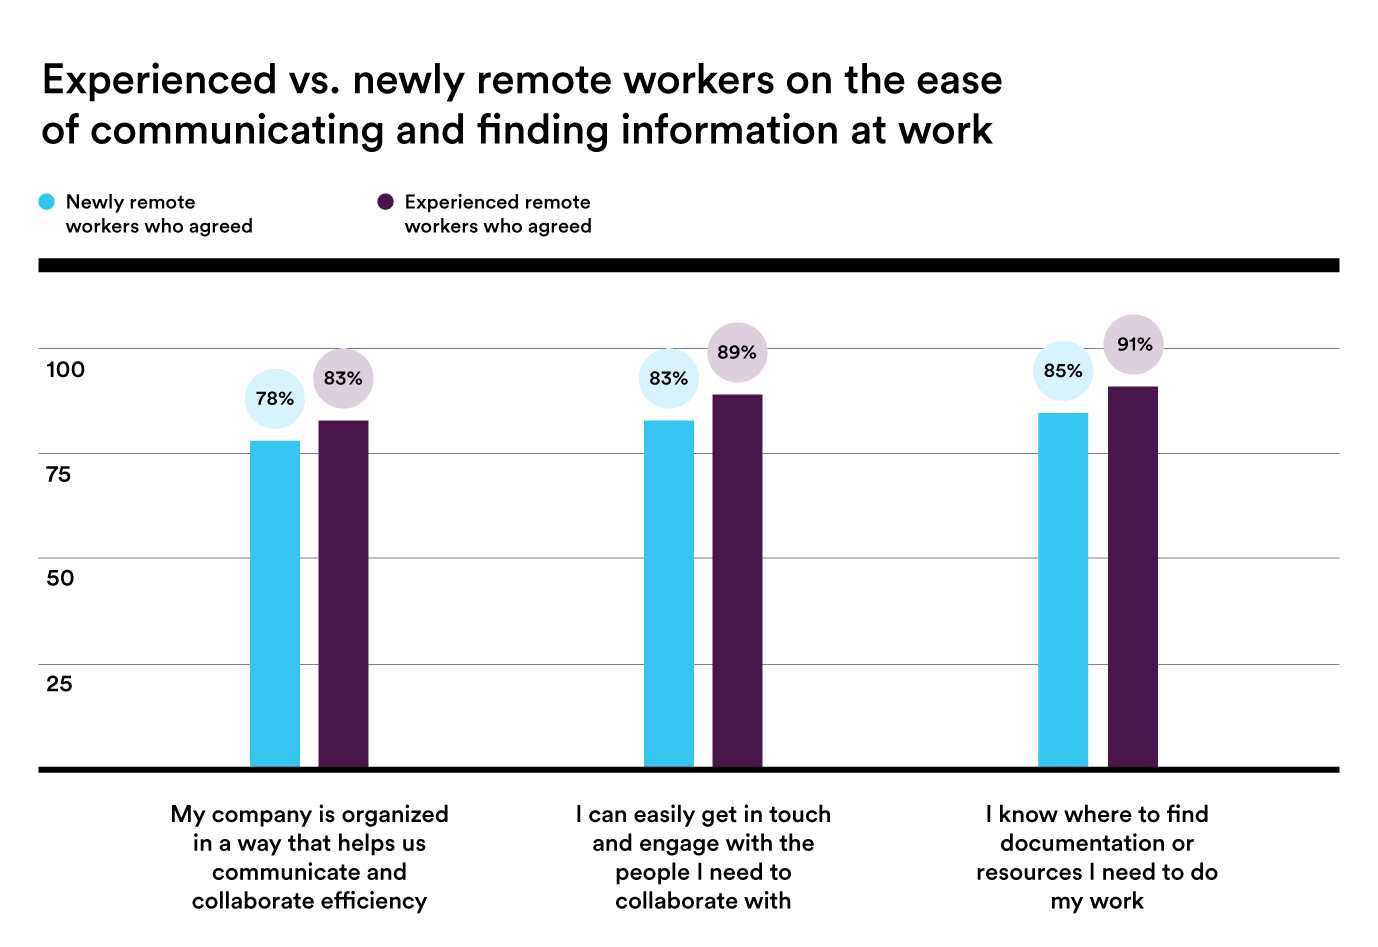 Bar chart showing how newly and experienced remote workers feel about communication and finding information for work.